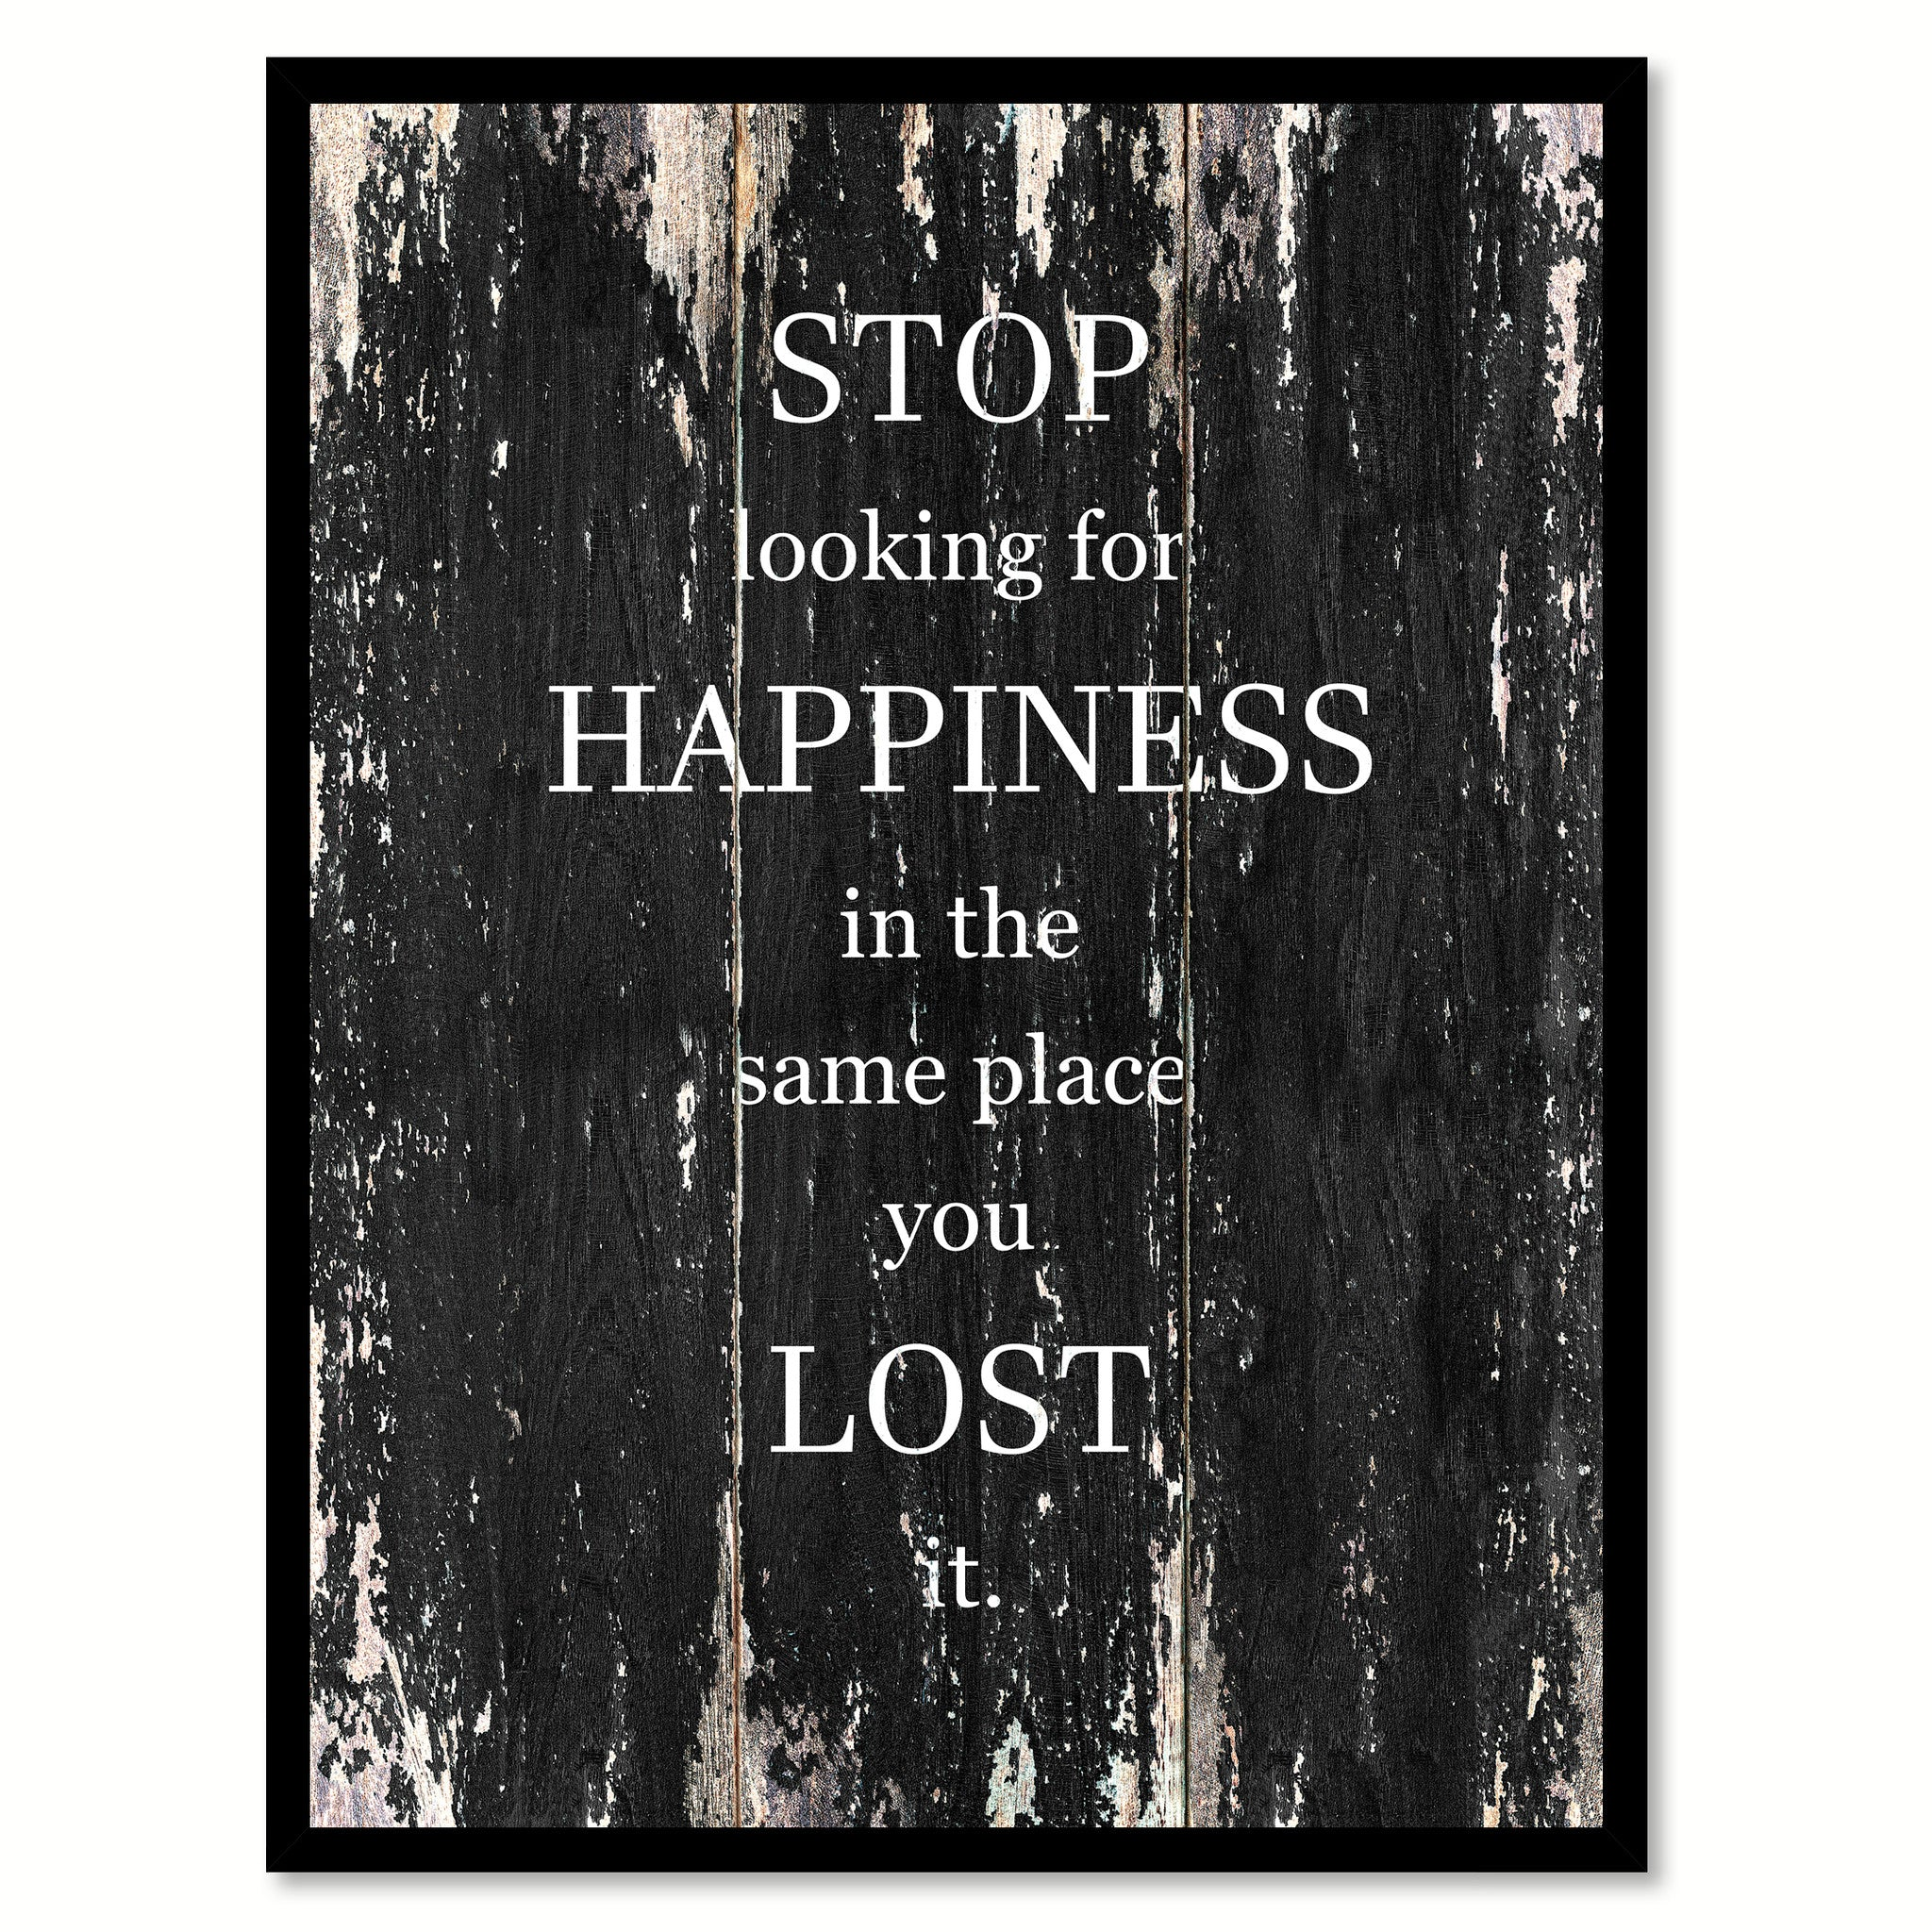 Stop looking for happiness in the same place you lost it Motivational Quote Saying Canvas Print with Picture Frame Home Decor Wall Art